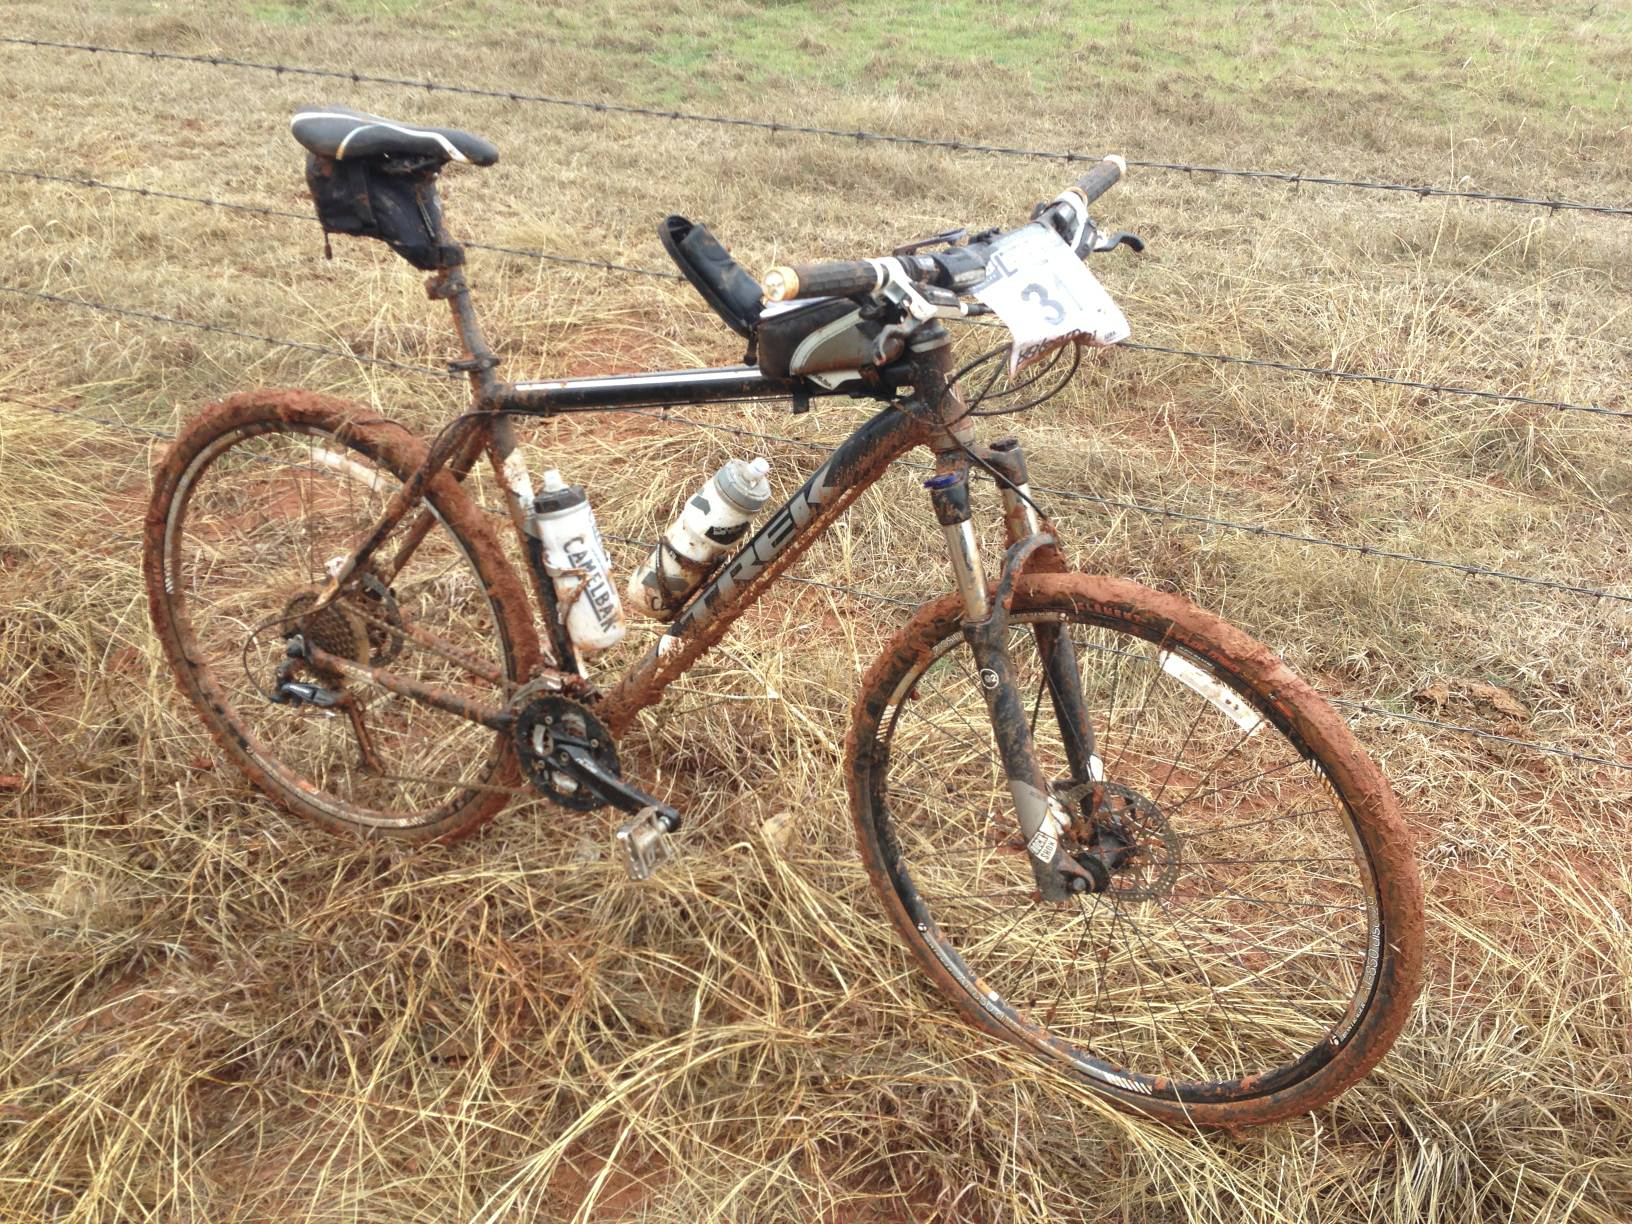 My bike last year on College road AFTER I had scrapped an inch of mud off the tires.